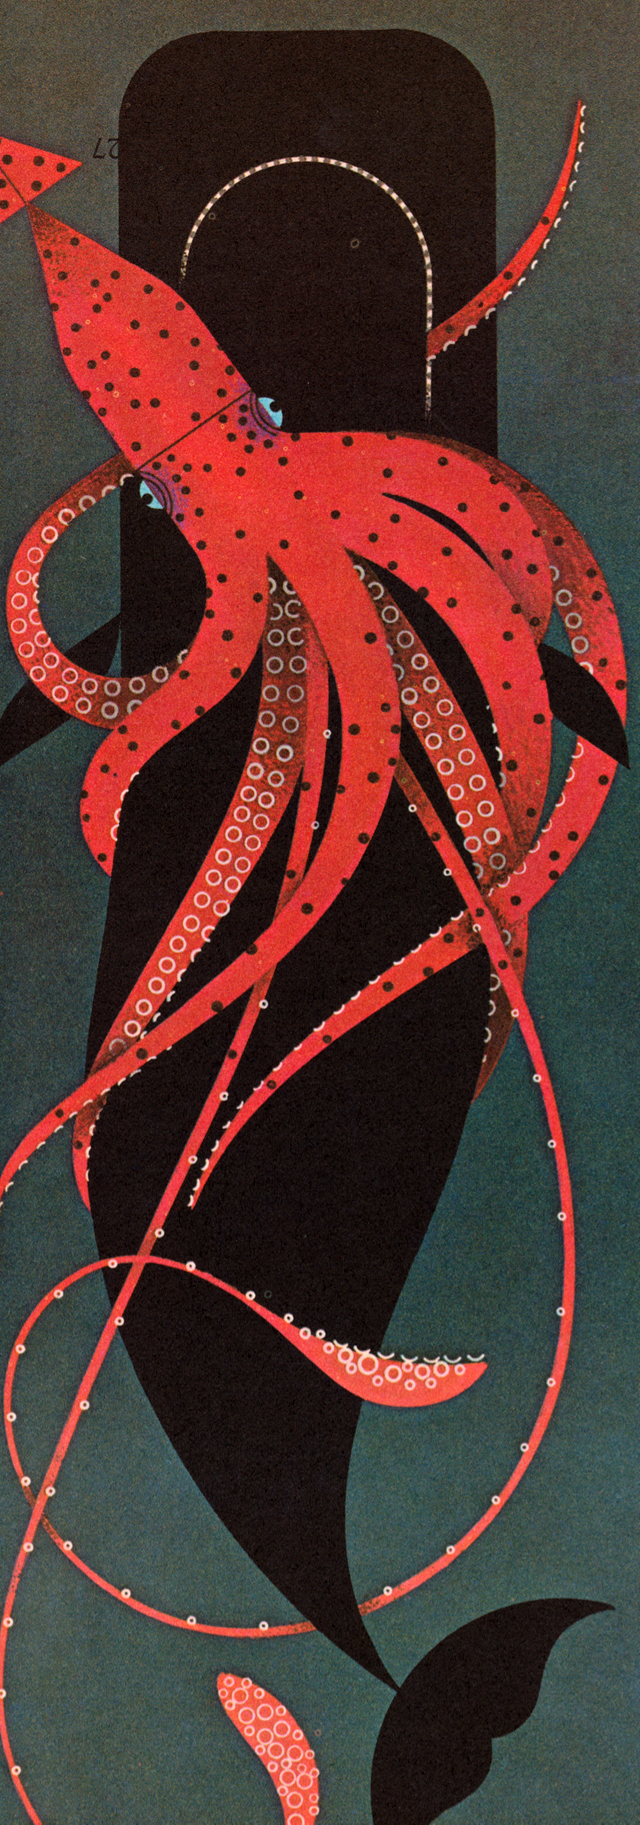 The Animal Kingdom,  Written by George S. Fichter, Illustrated by Charley Harper (1968).